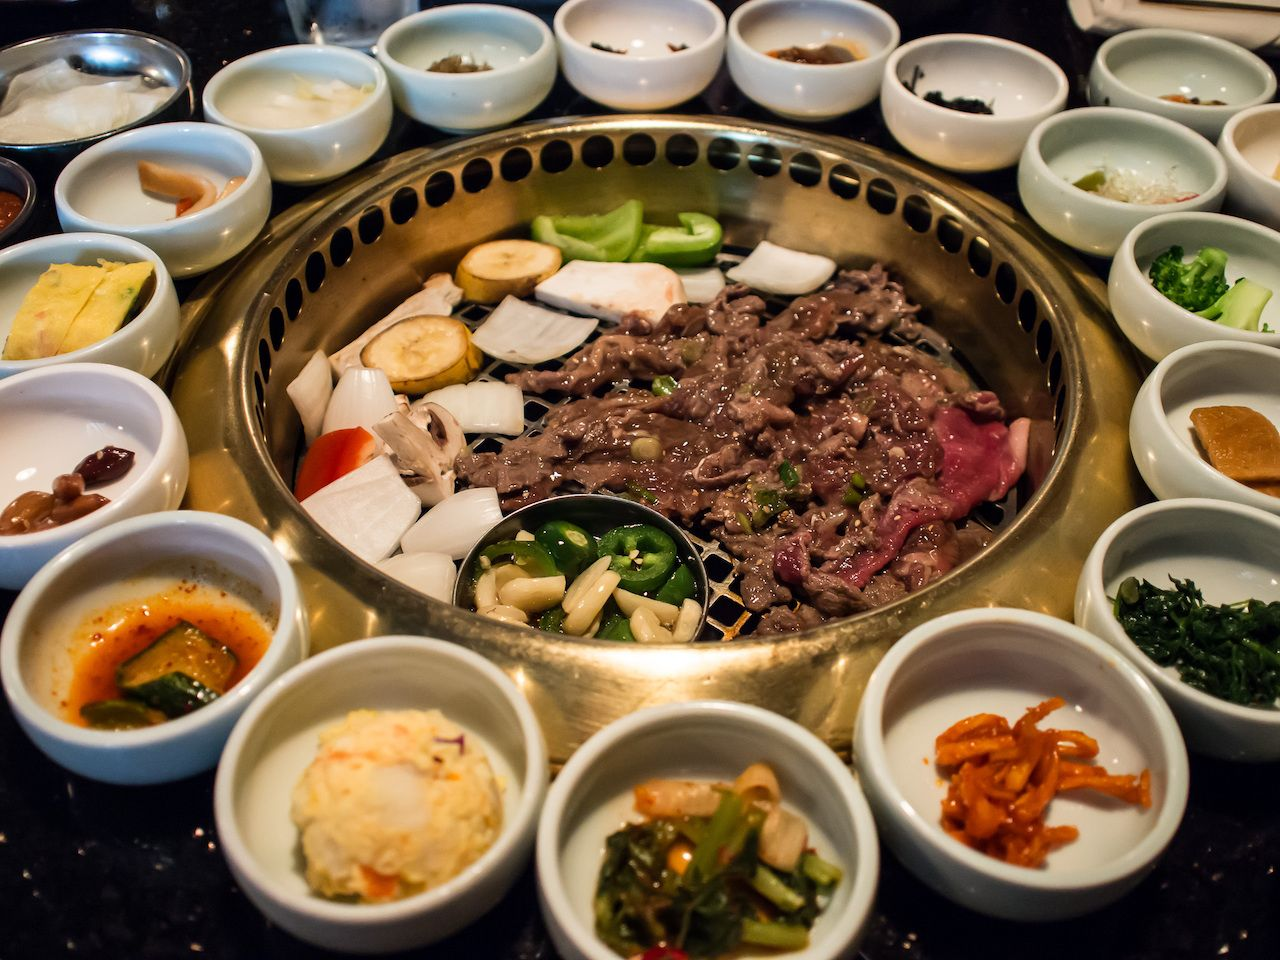 Korean BBQ with full side dishes